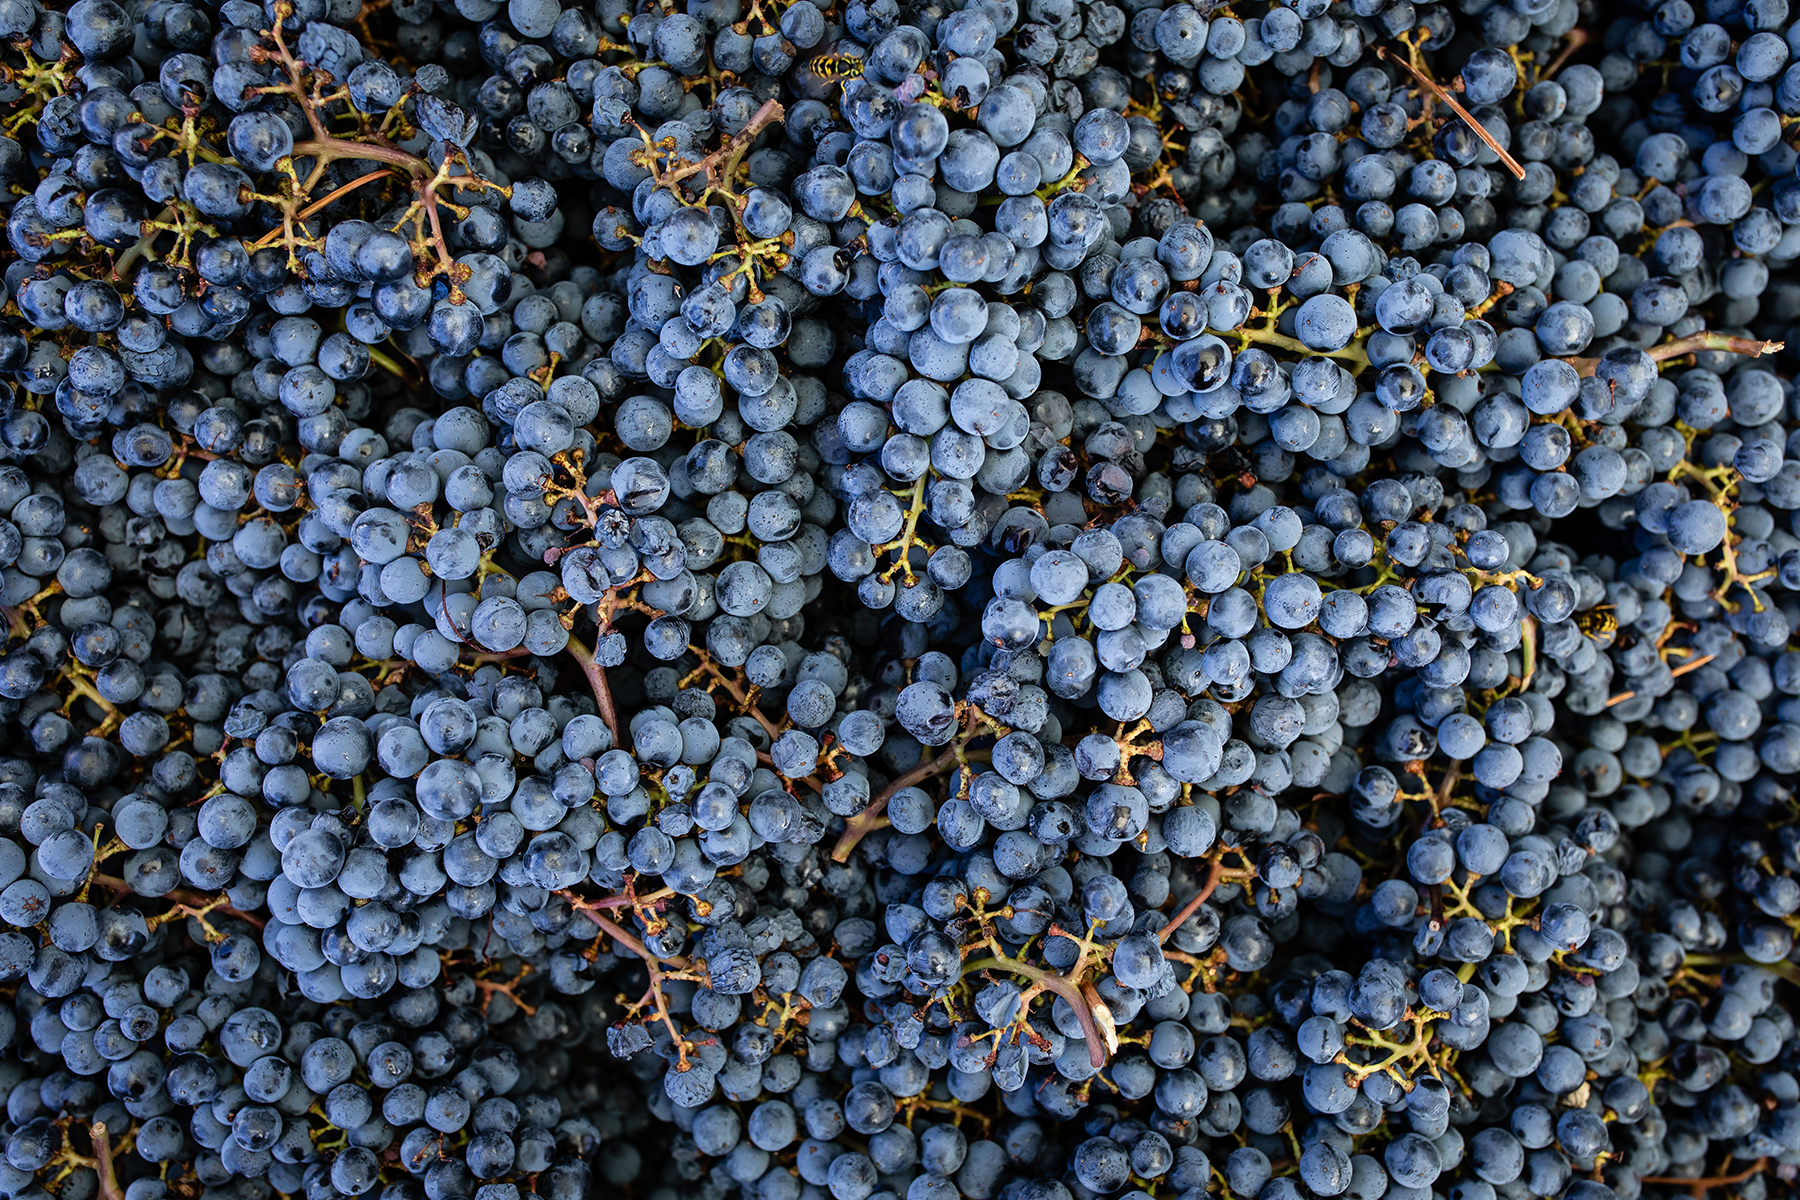 Sea of blue grapes